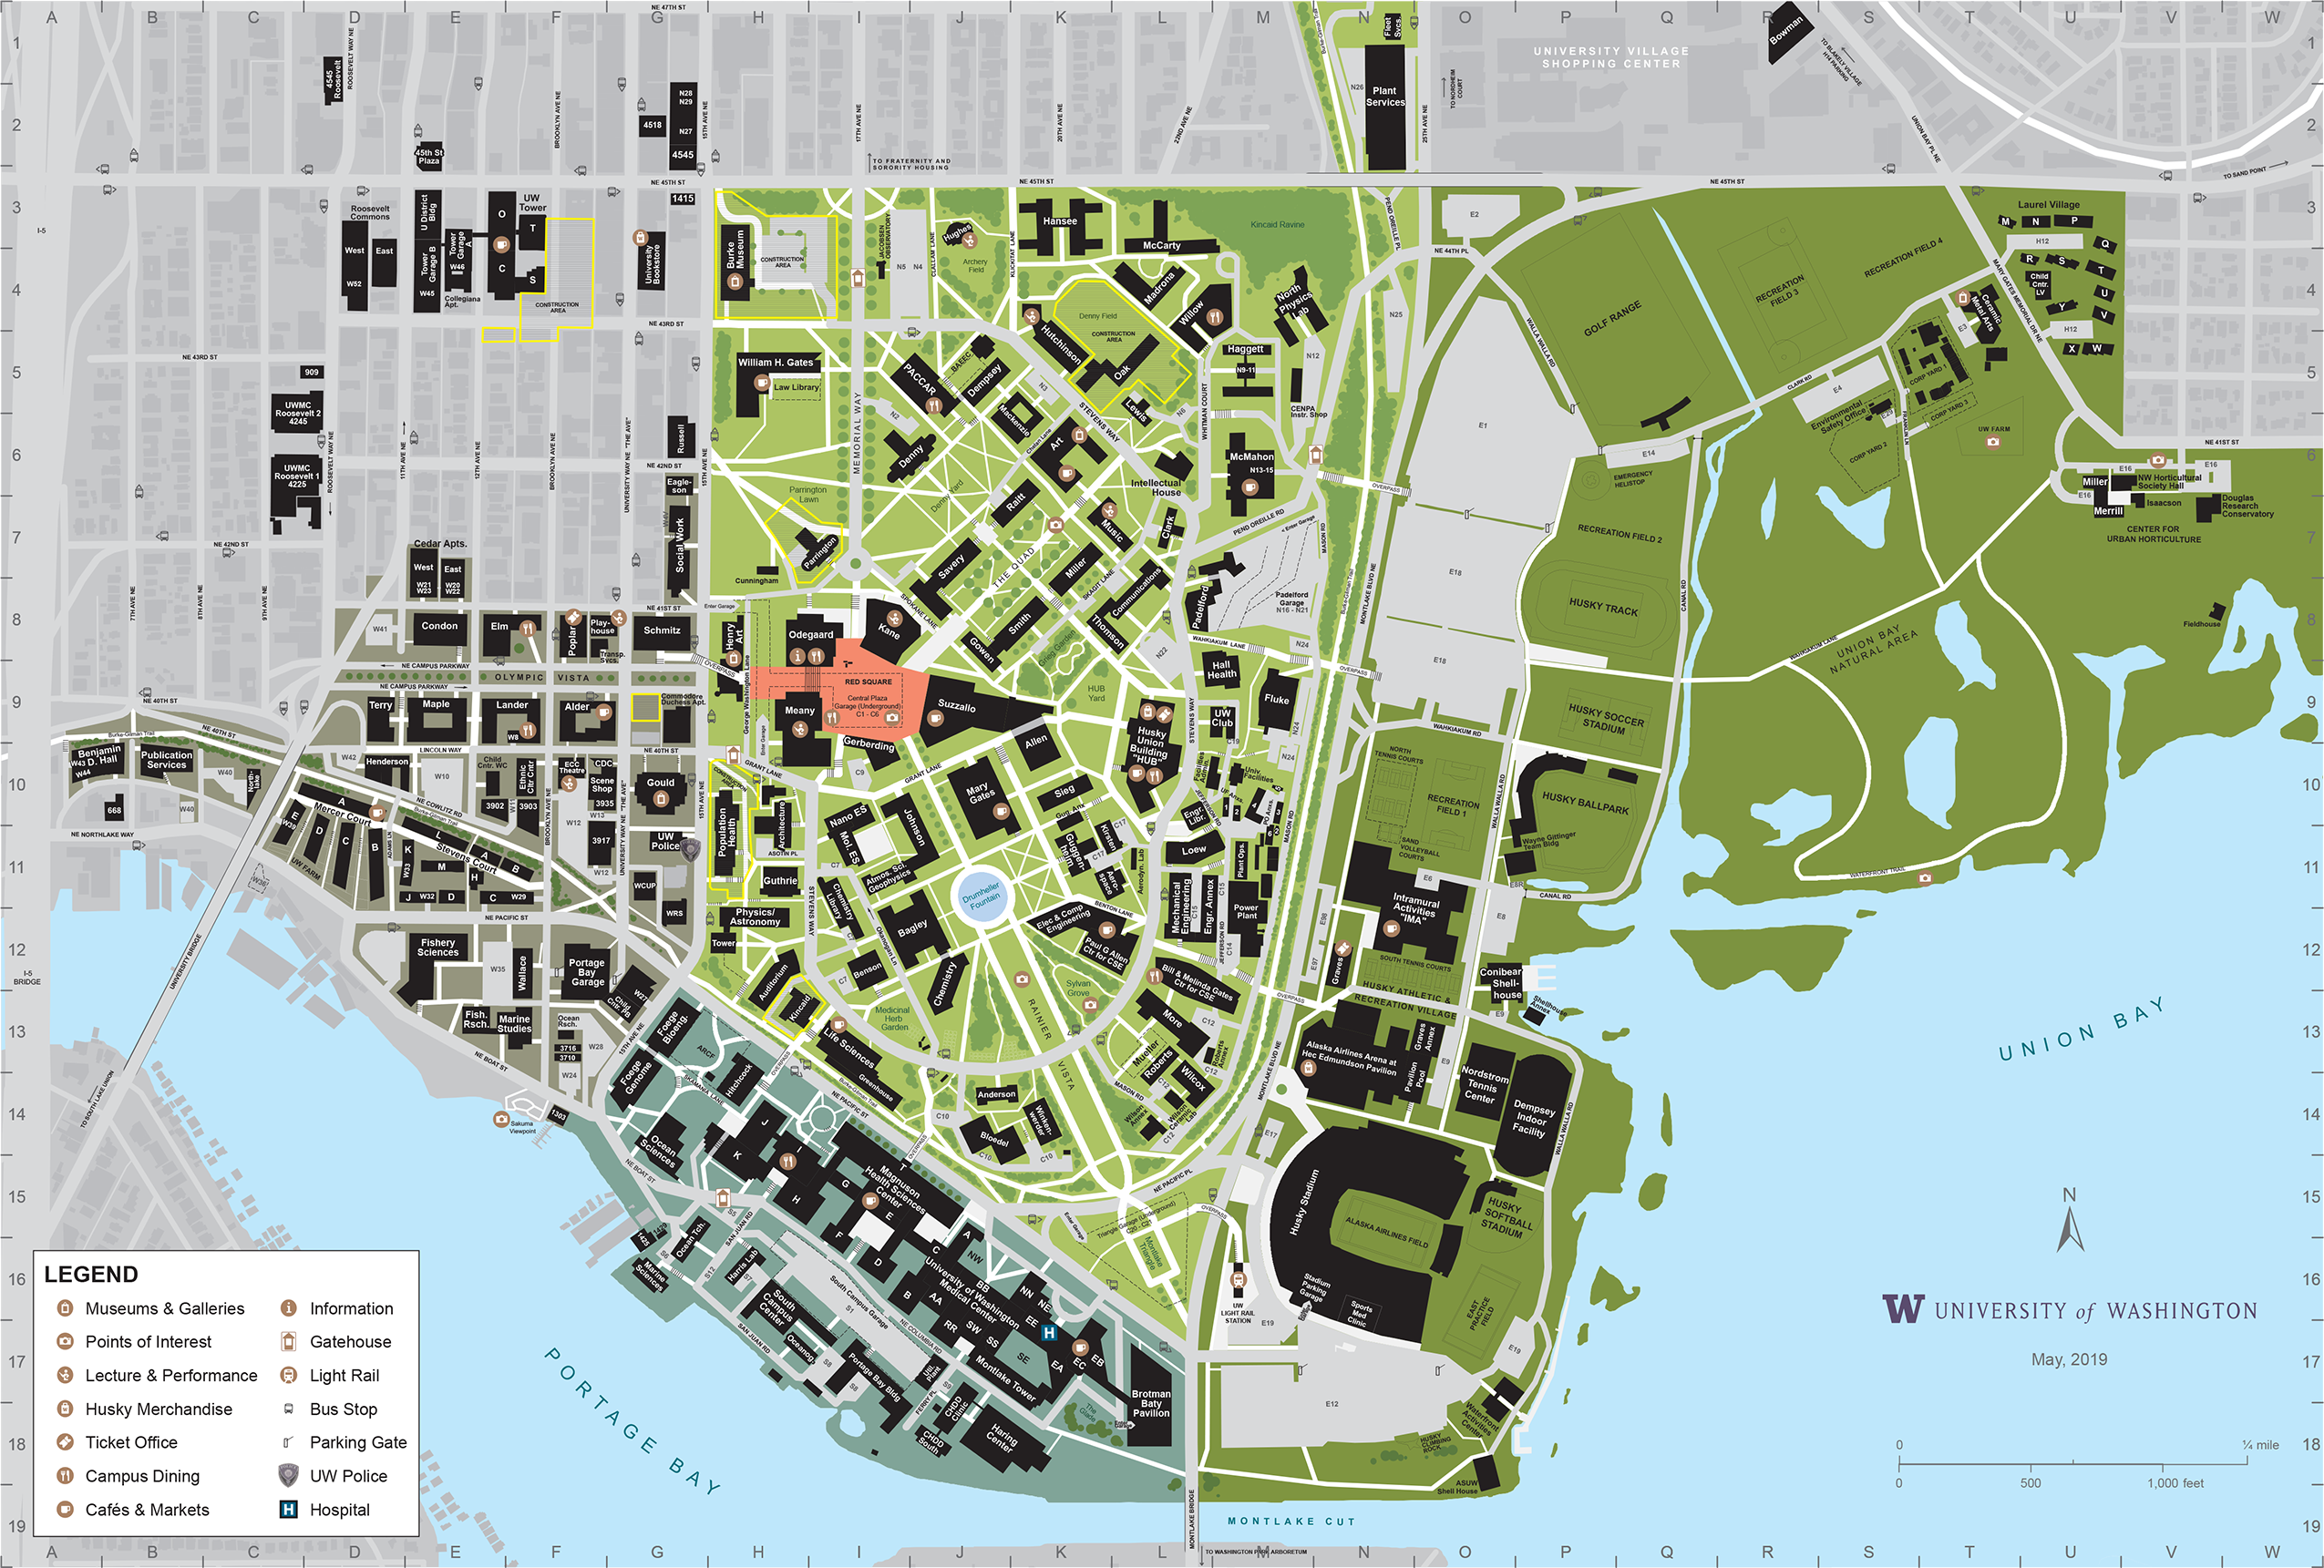 university washington campus map Apl Uw Website Campus Map